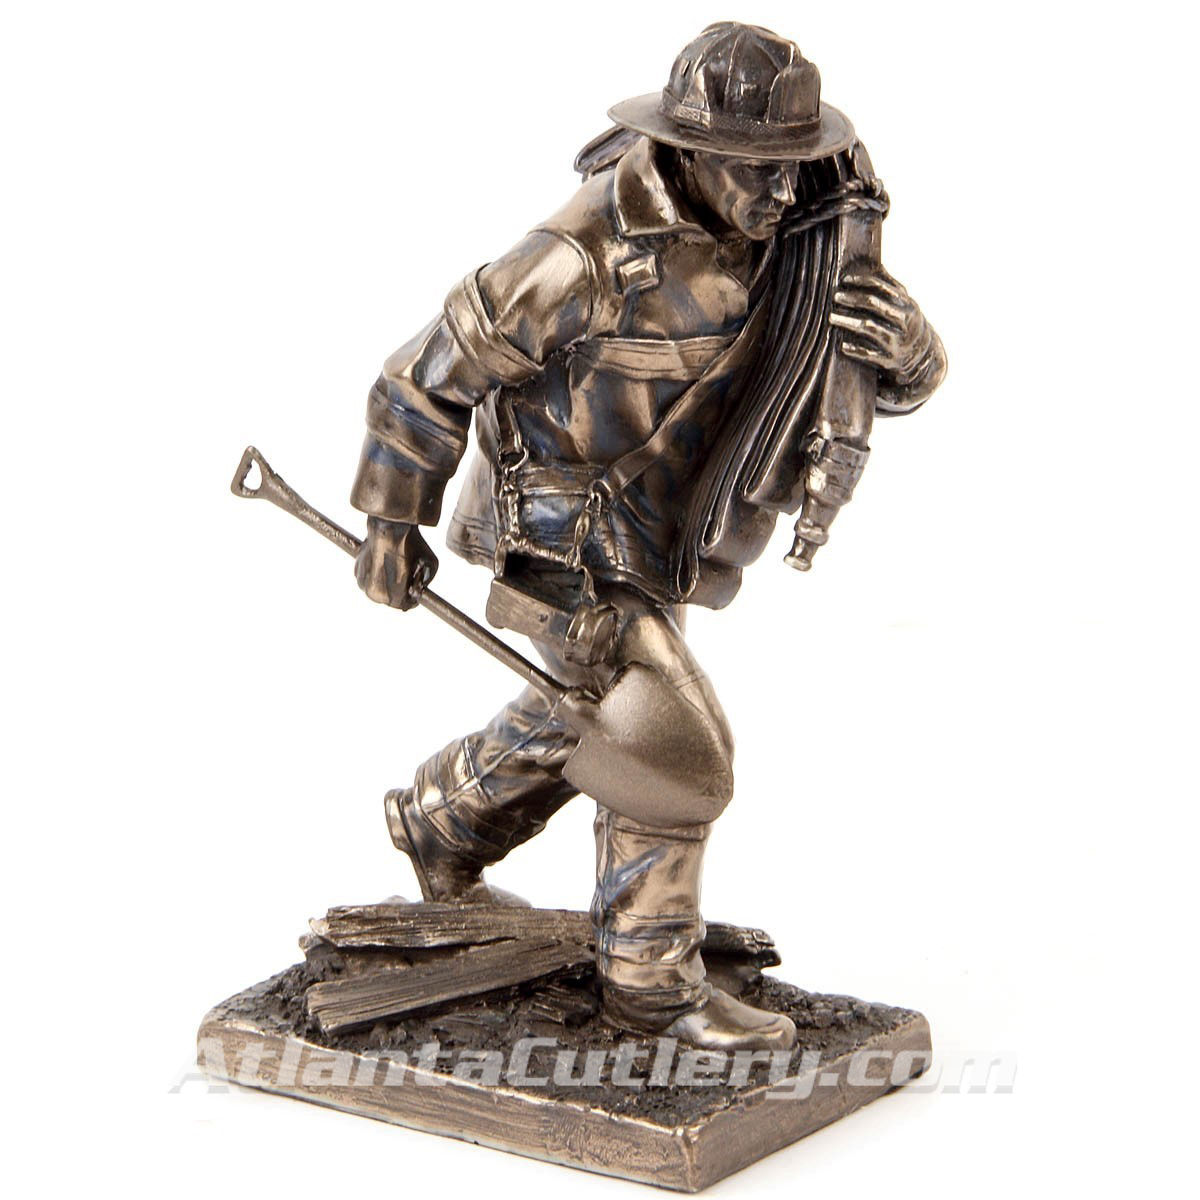 Firefighter in Action Statue